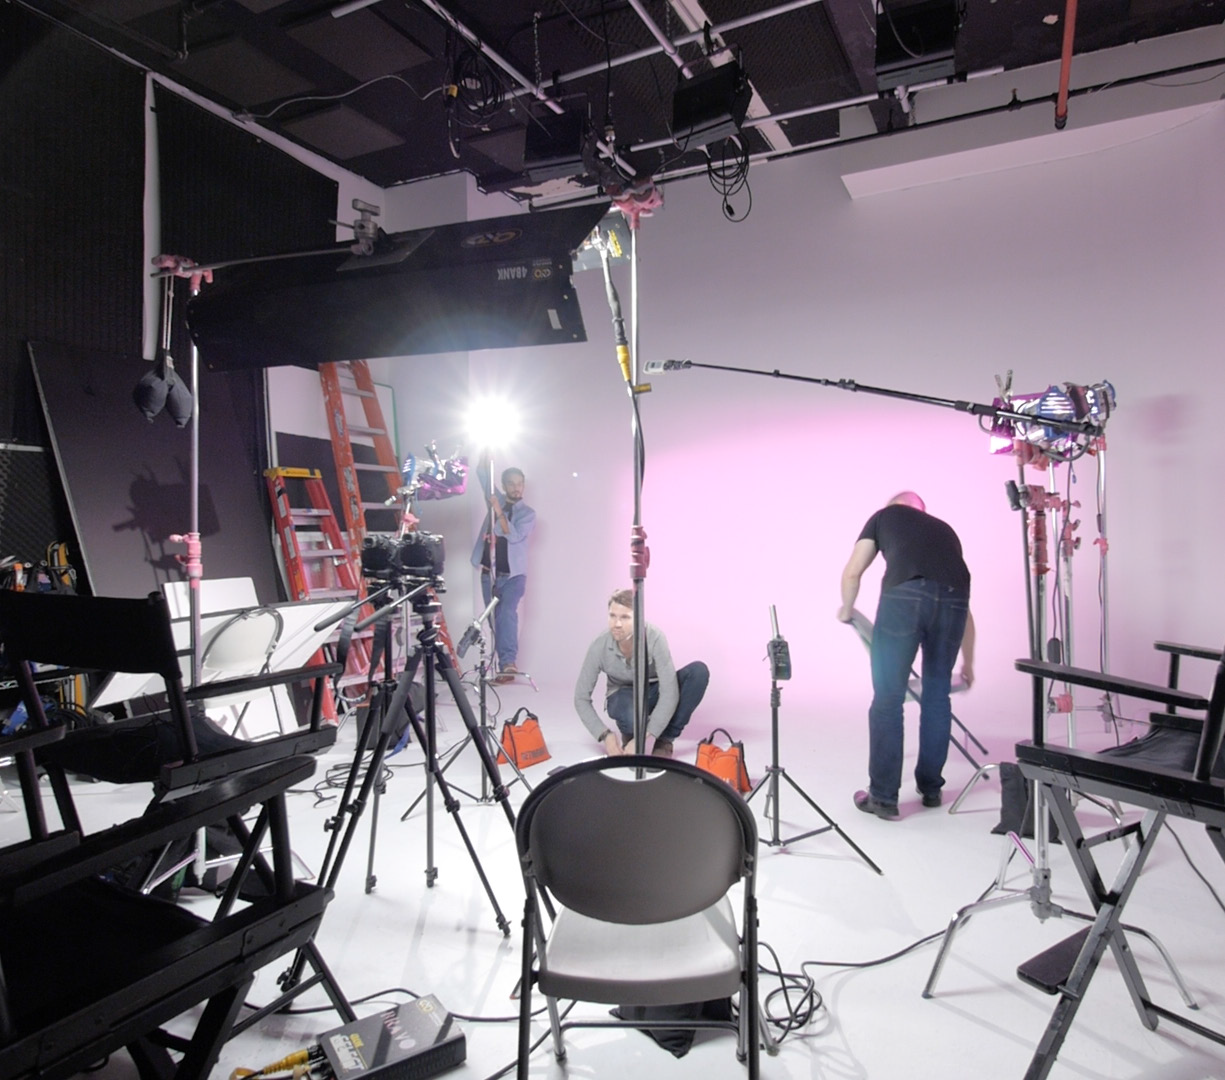 Professional, Corporate Video Shooting In Hunterdon County, NJ - Top Notch Cinema - About-us